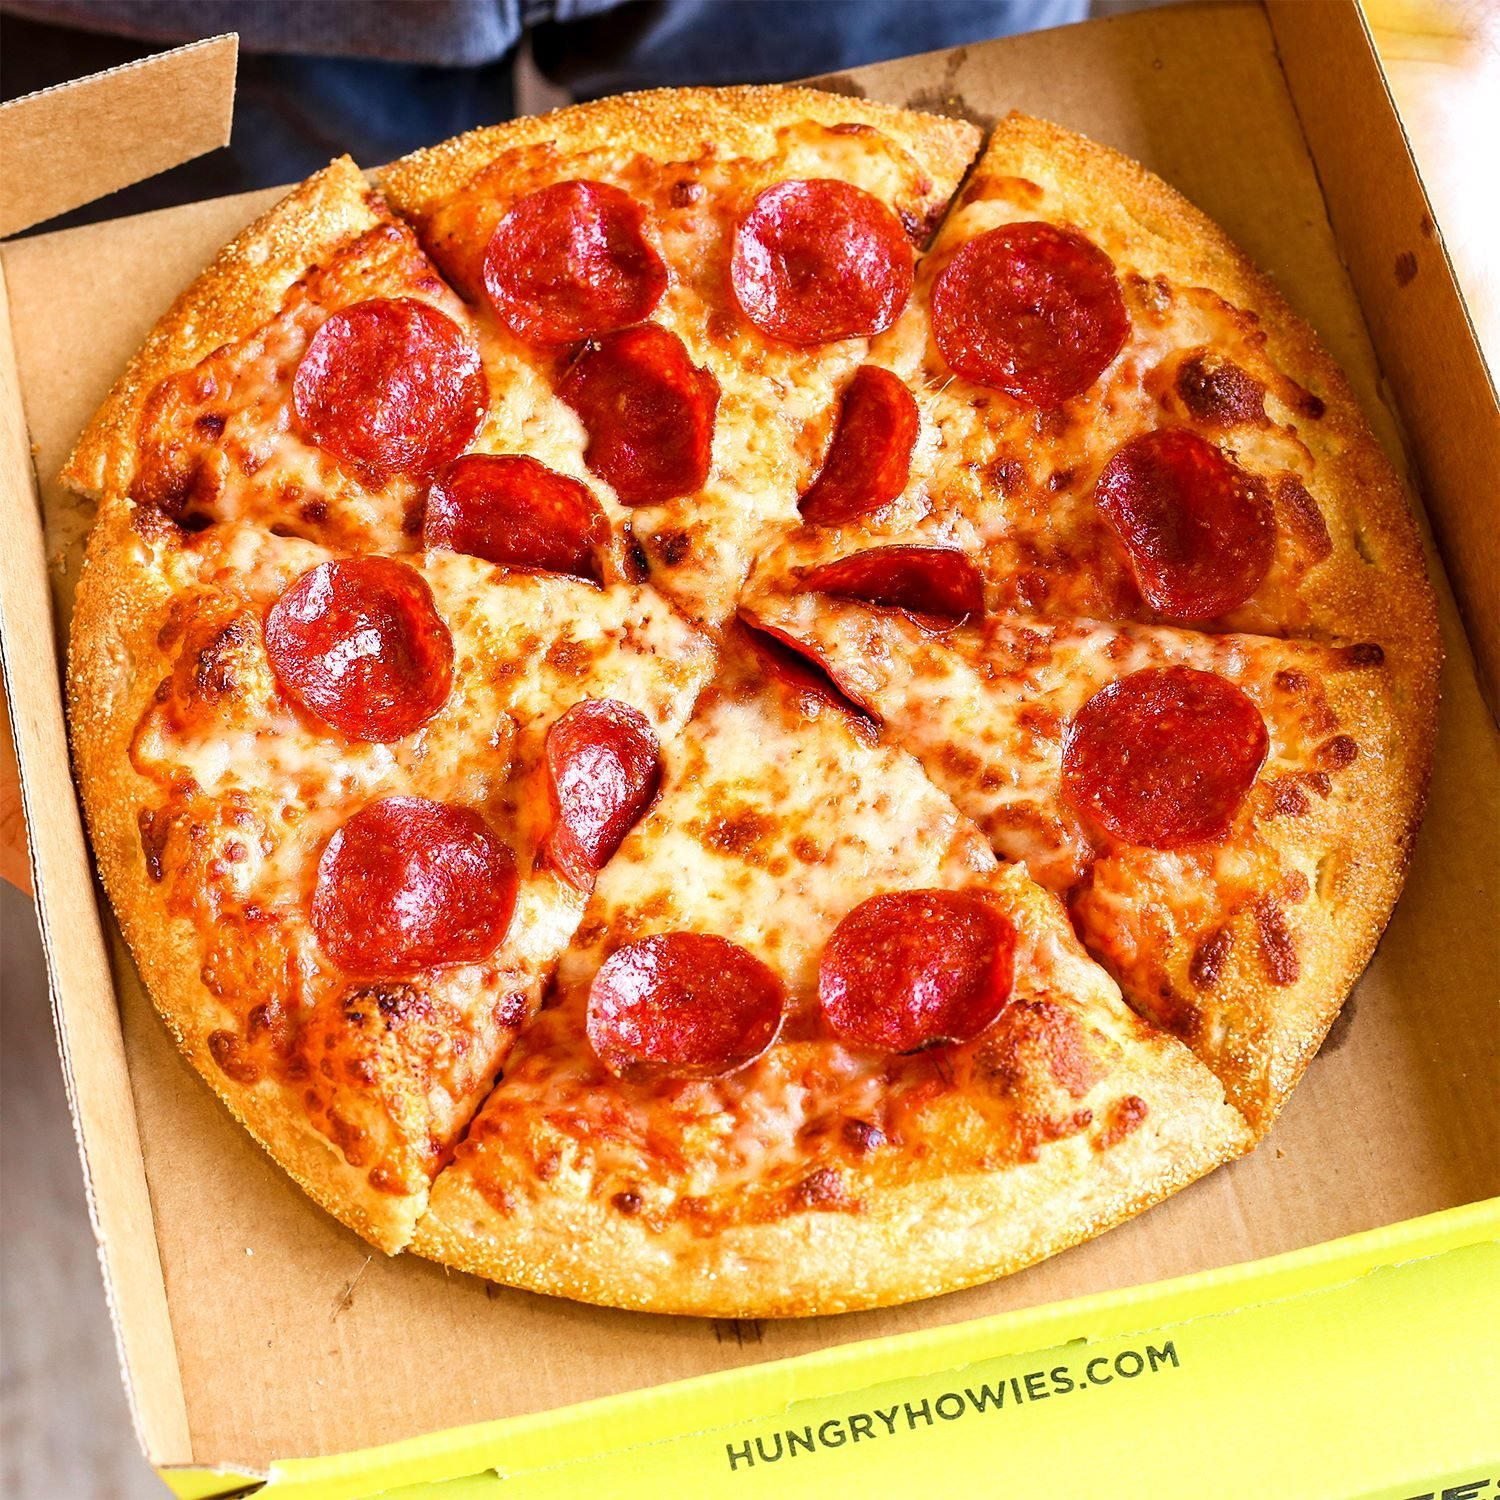 Hungry Howie's pepperoni pizza